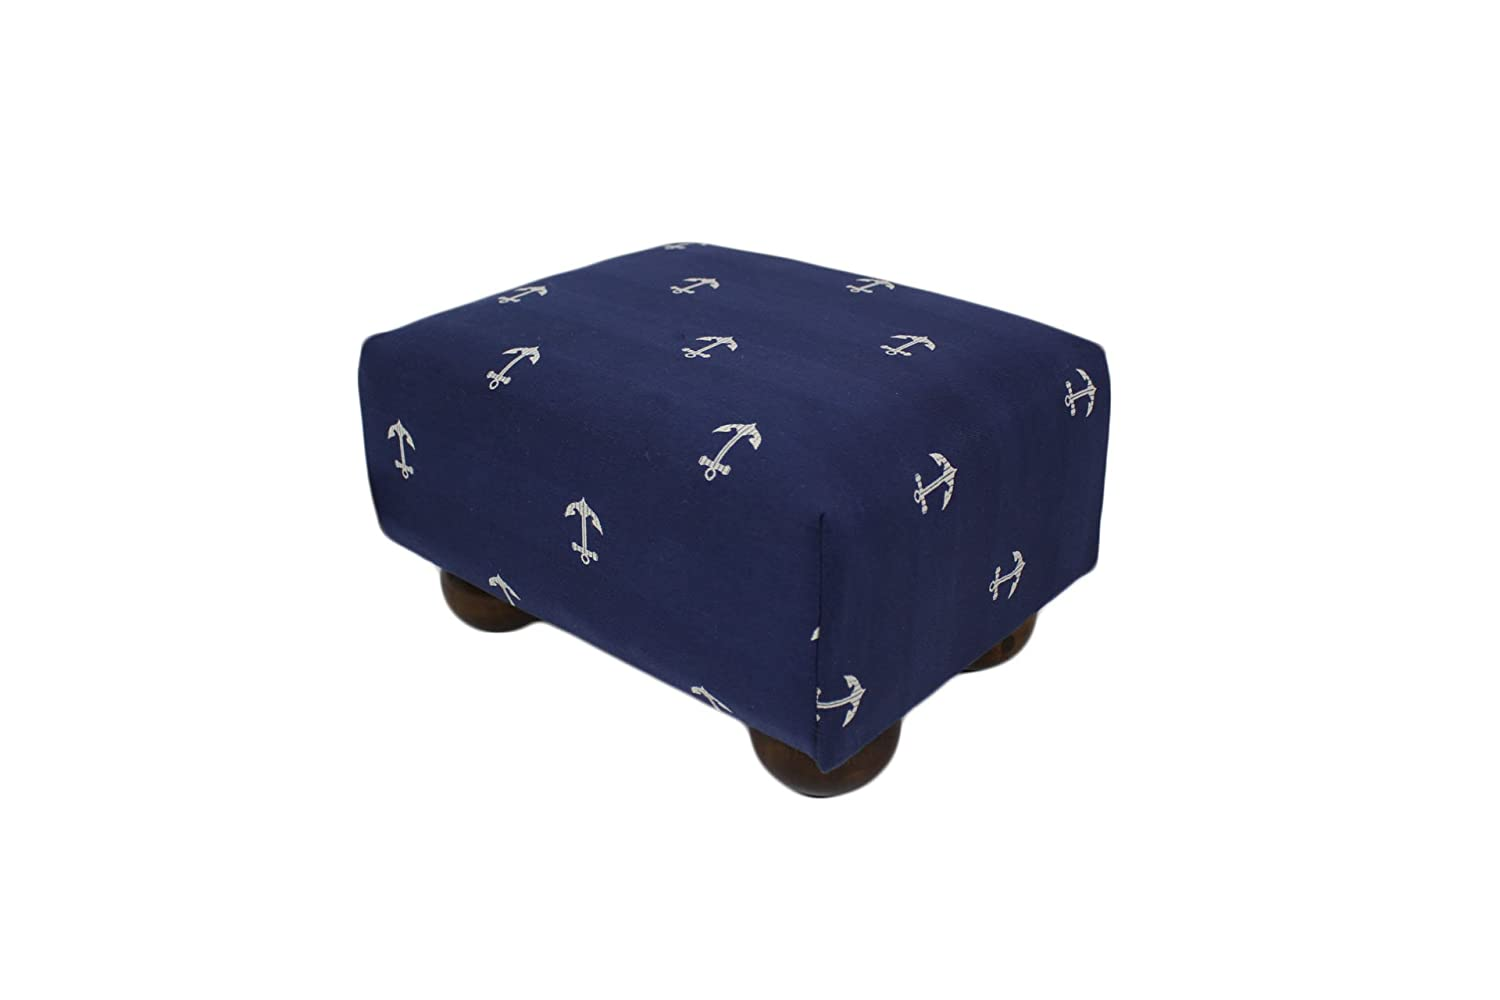 Deep Navy Blue Nautical Anchors Upholstered Fabric Footstool Ottoman ITGAM Products AMI-47587-999